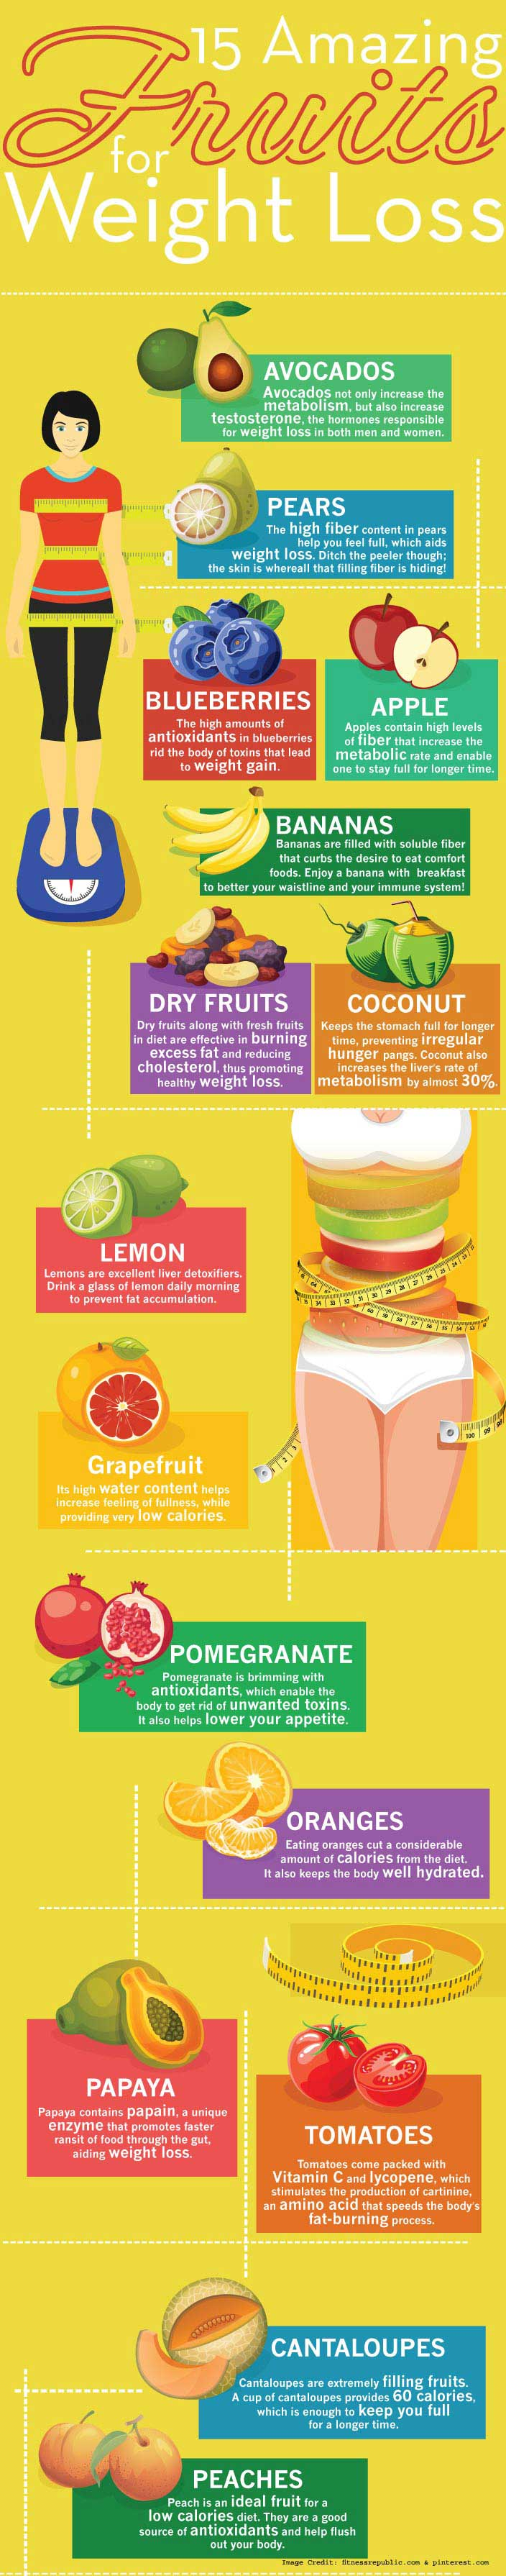 Fruit Weight Loss